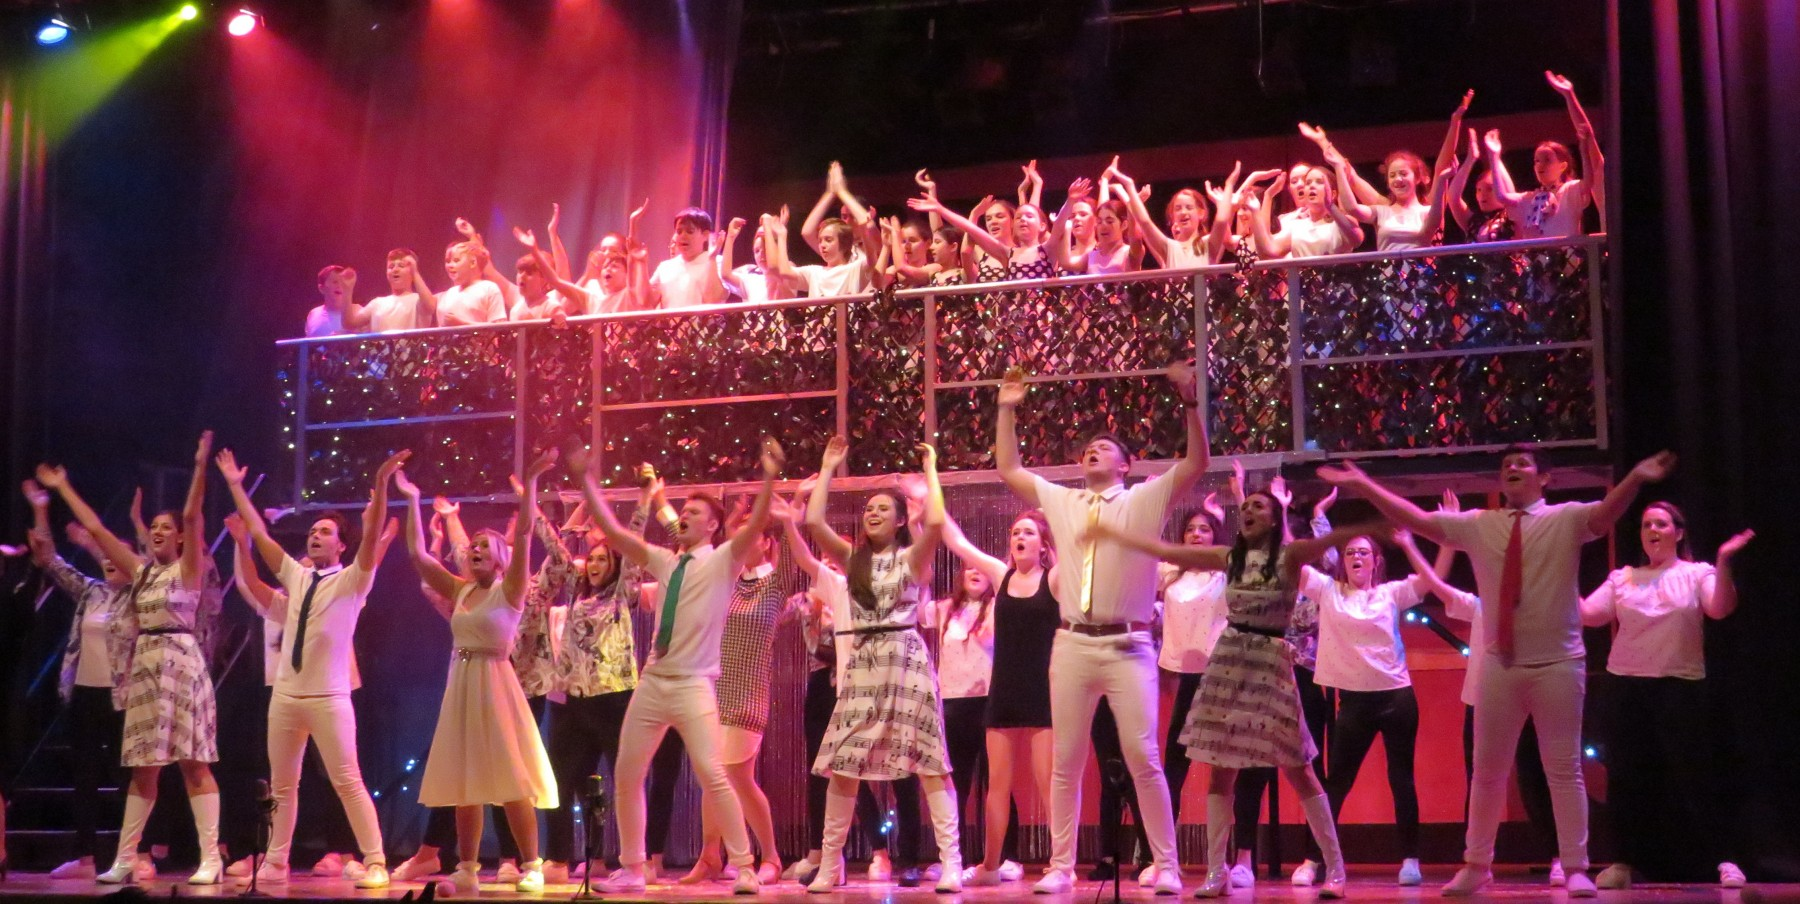 Musicality Academy - Summer Holiday Finale